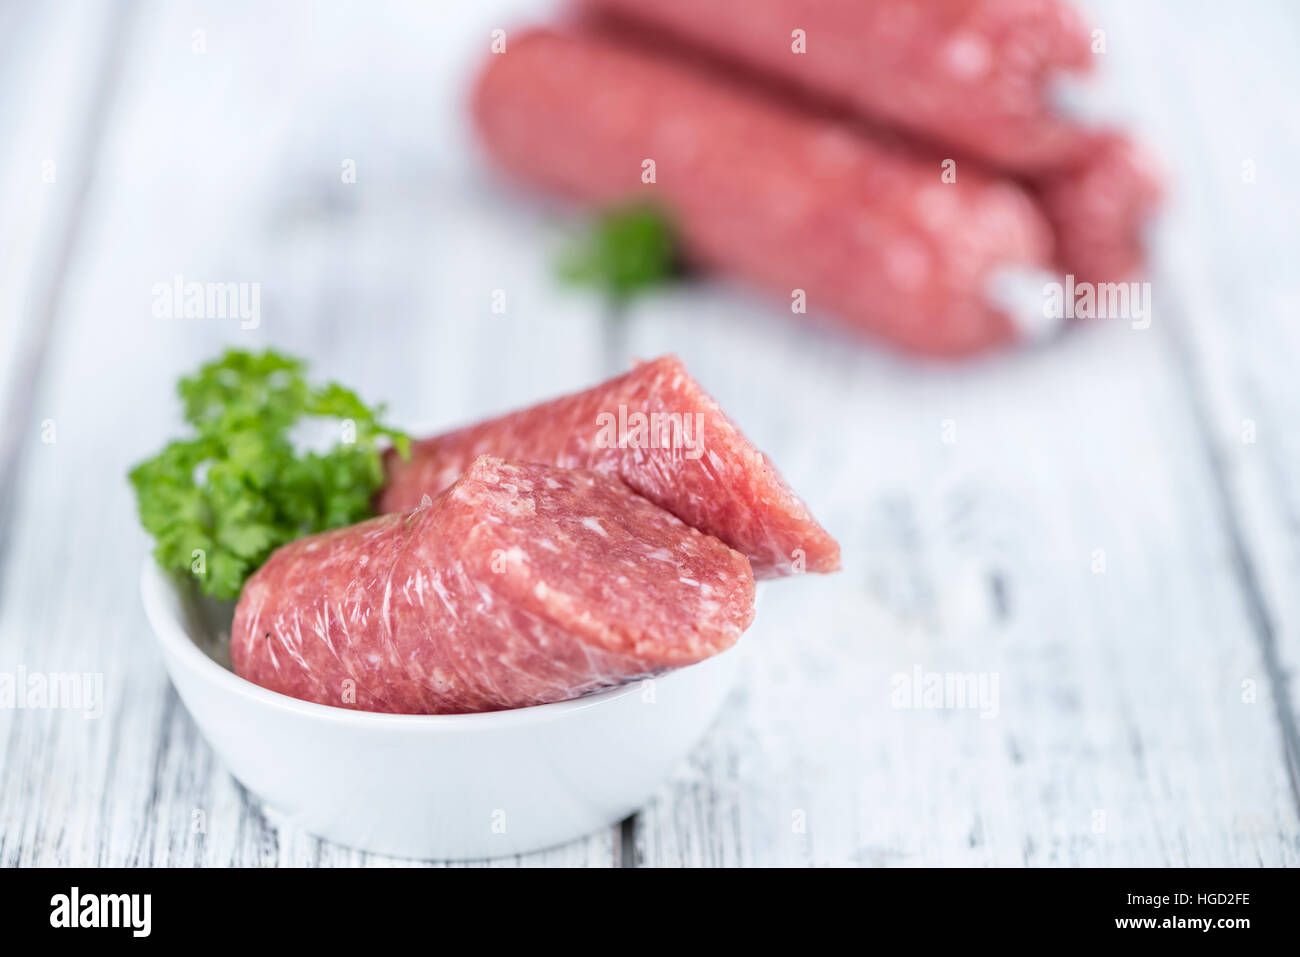 Minced Pork Sausage (German cuisine; selective focus) on wooden background - Stock Image